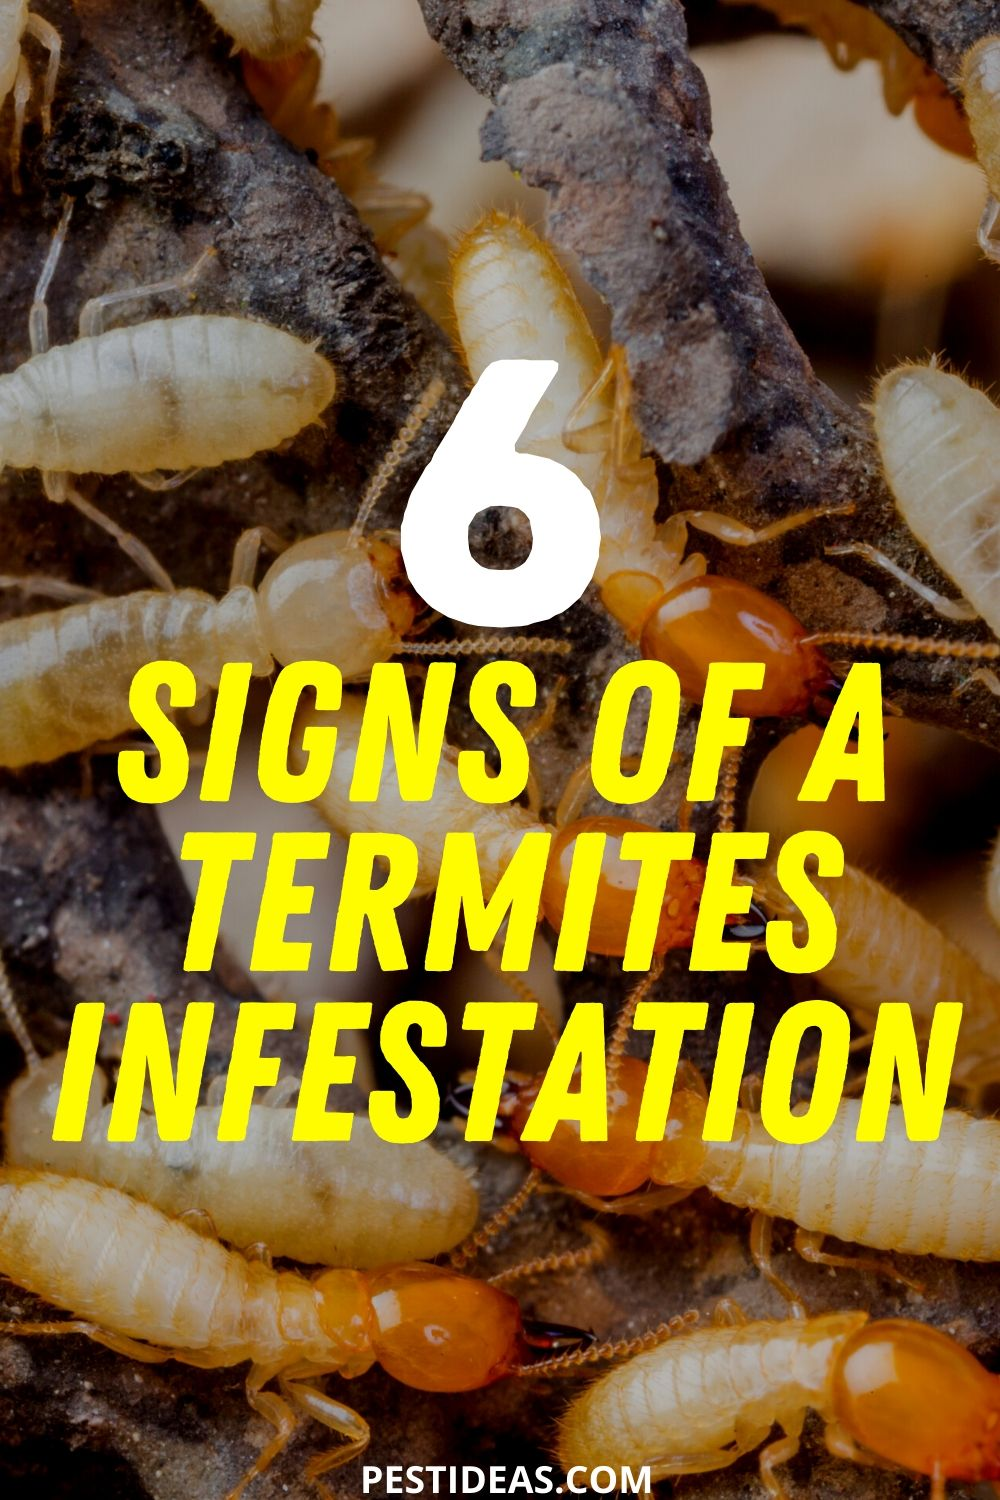 6 Signs of a Termite Infestation